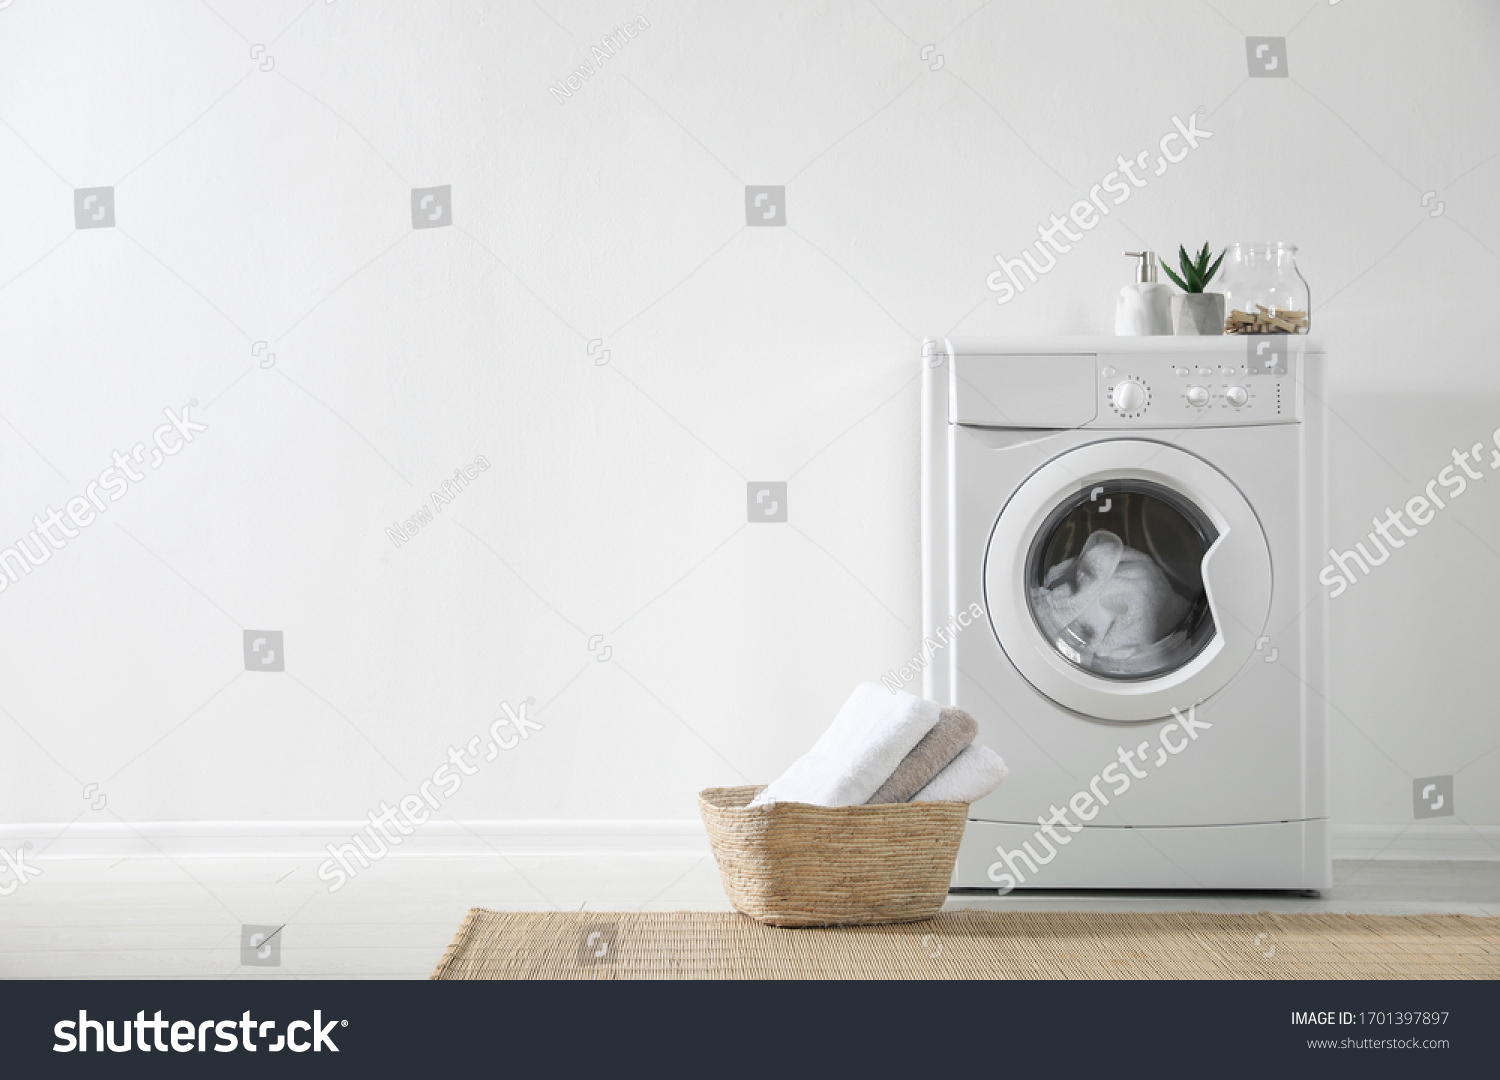 Modern washing machine and laundry basket near white wall indoors, space for text. Bathroom interior #1701397897